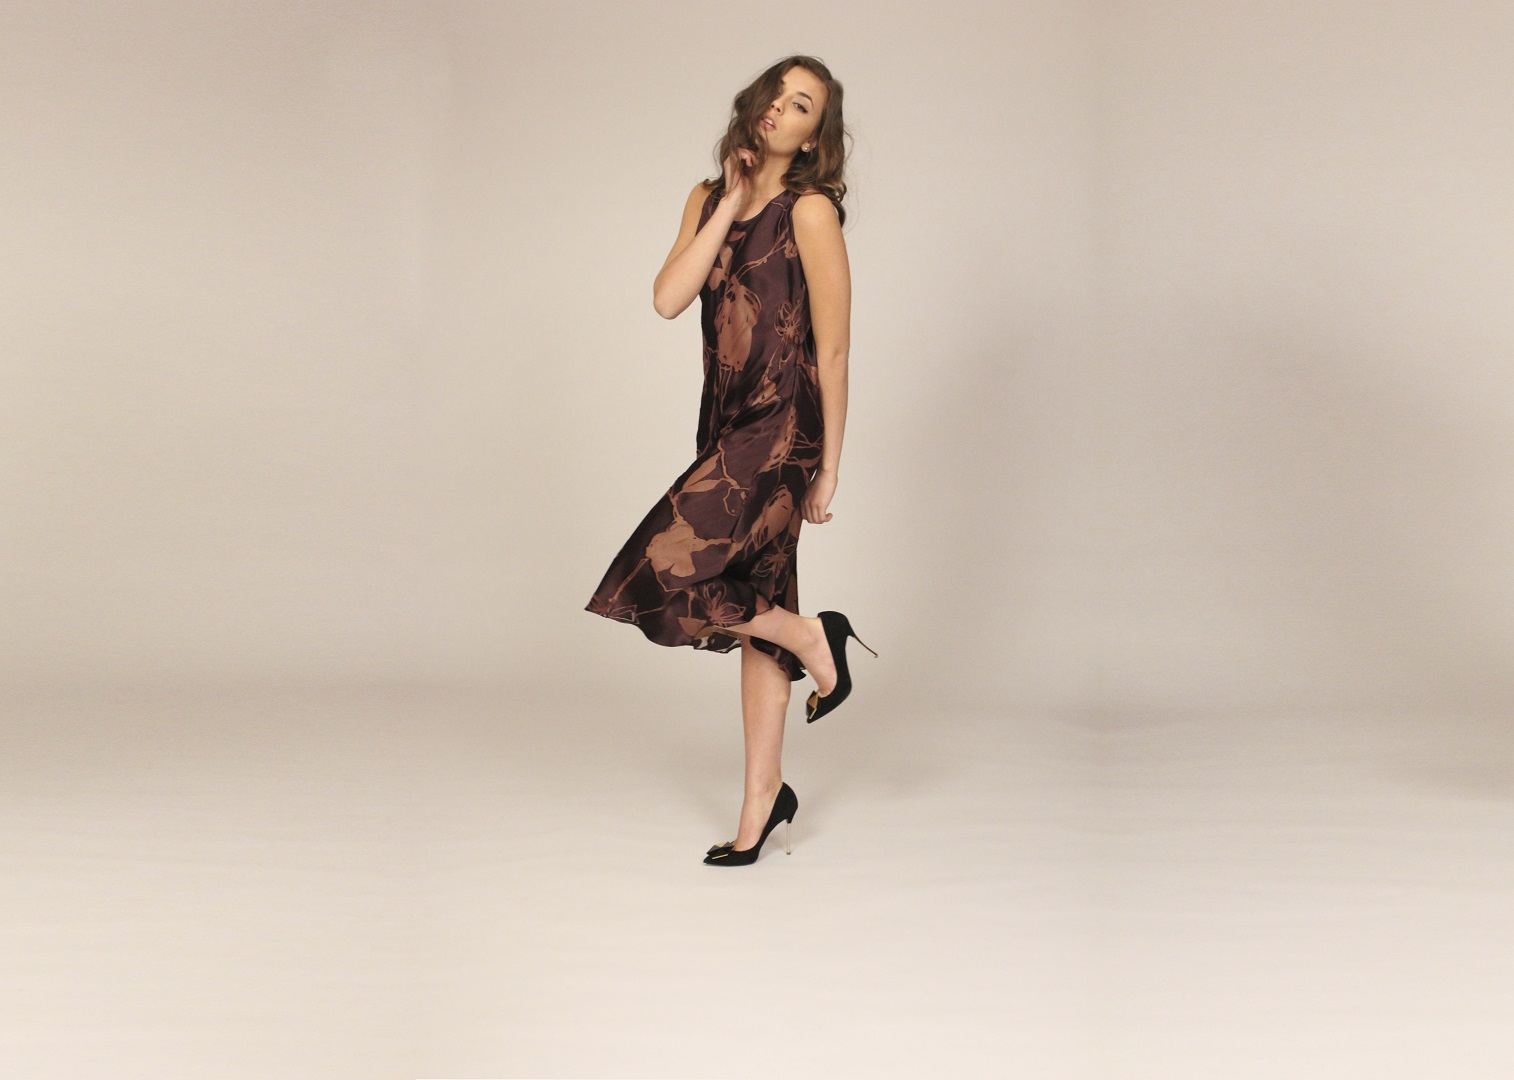 Burgundy burntout Organza Dress (2016_07_02 22_56_22 UTC)